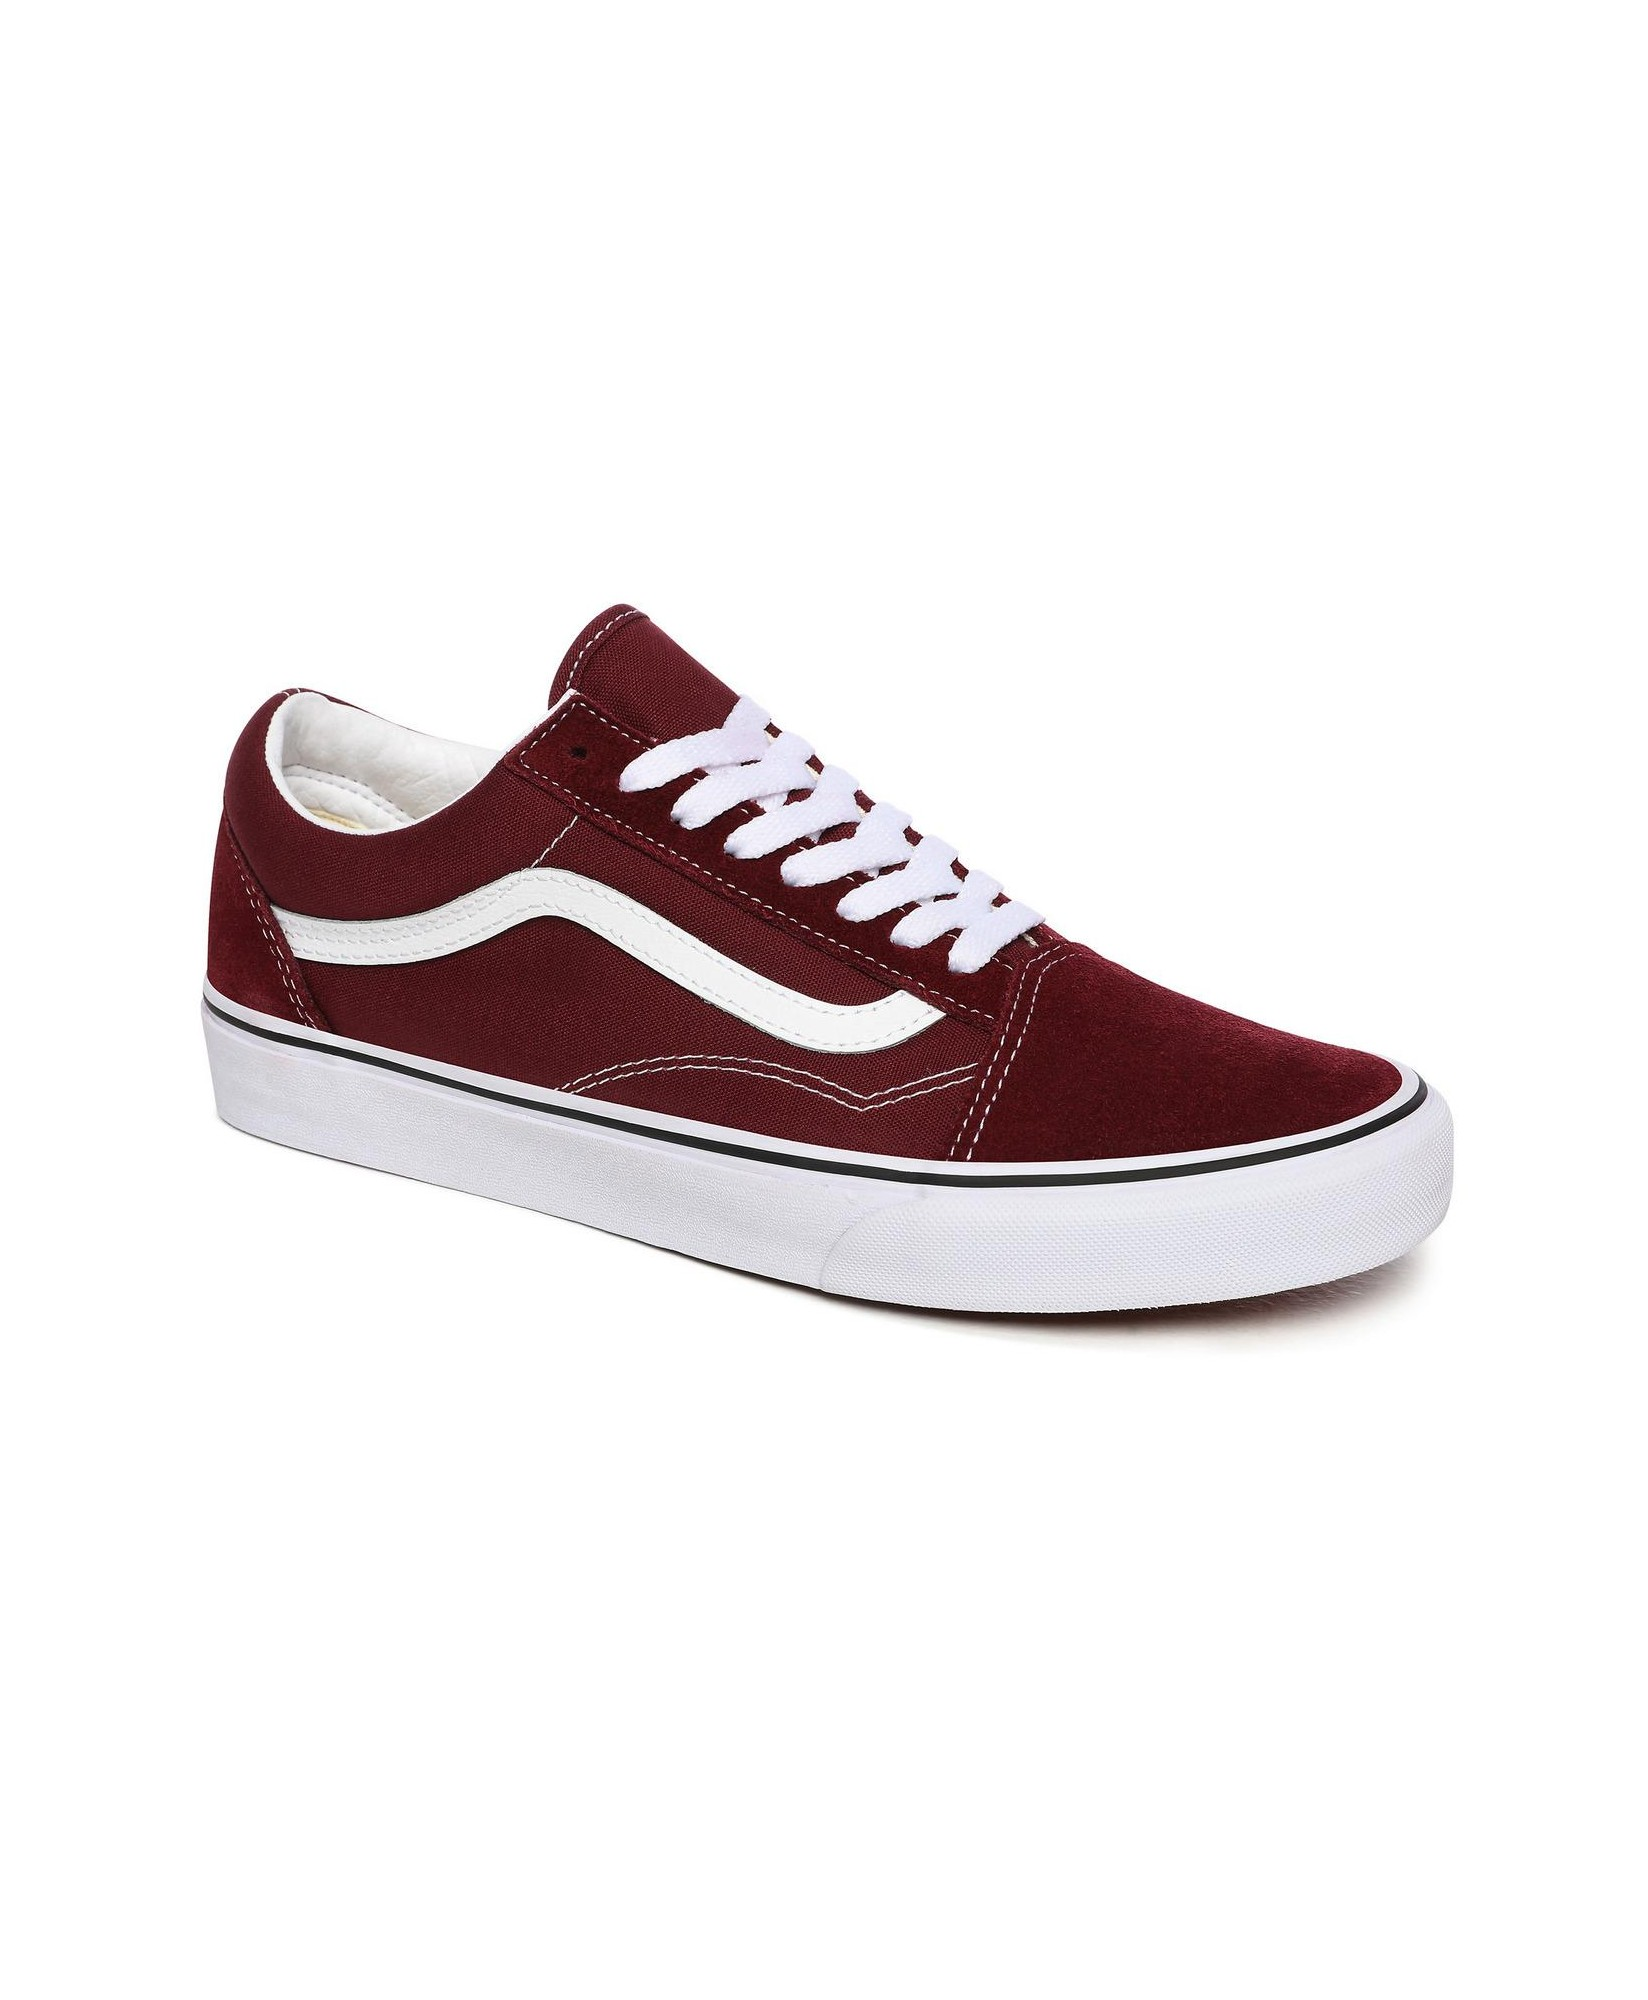 ZAPATILLAS OLD SKOOL